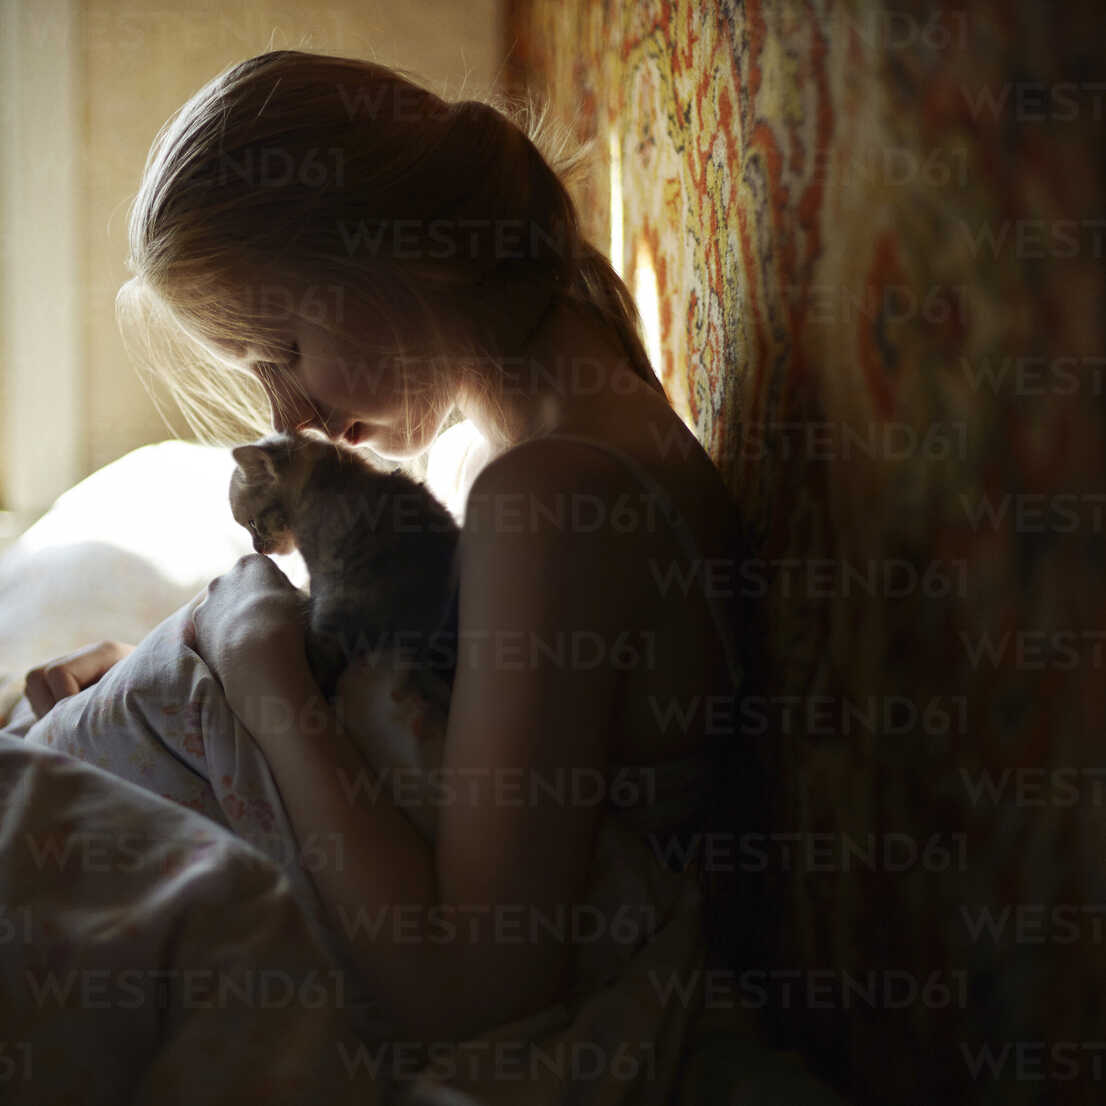 Side view of woman sitting with cat on bed - CAVF34309 - Cavan Images/Westend61